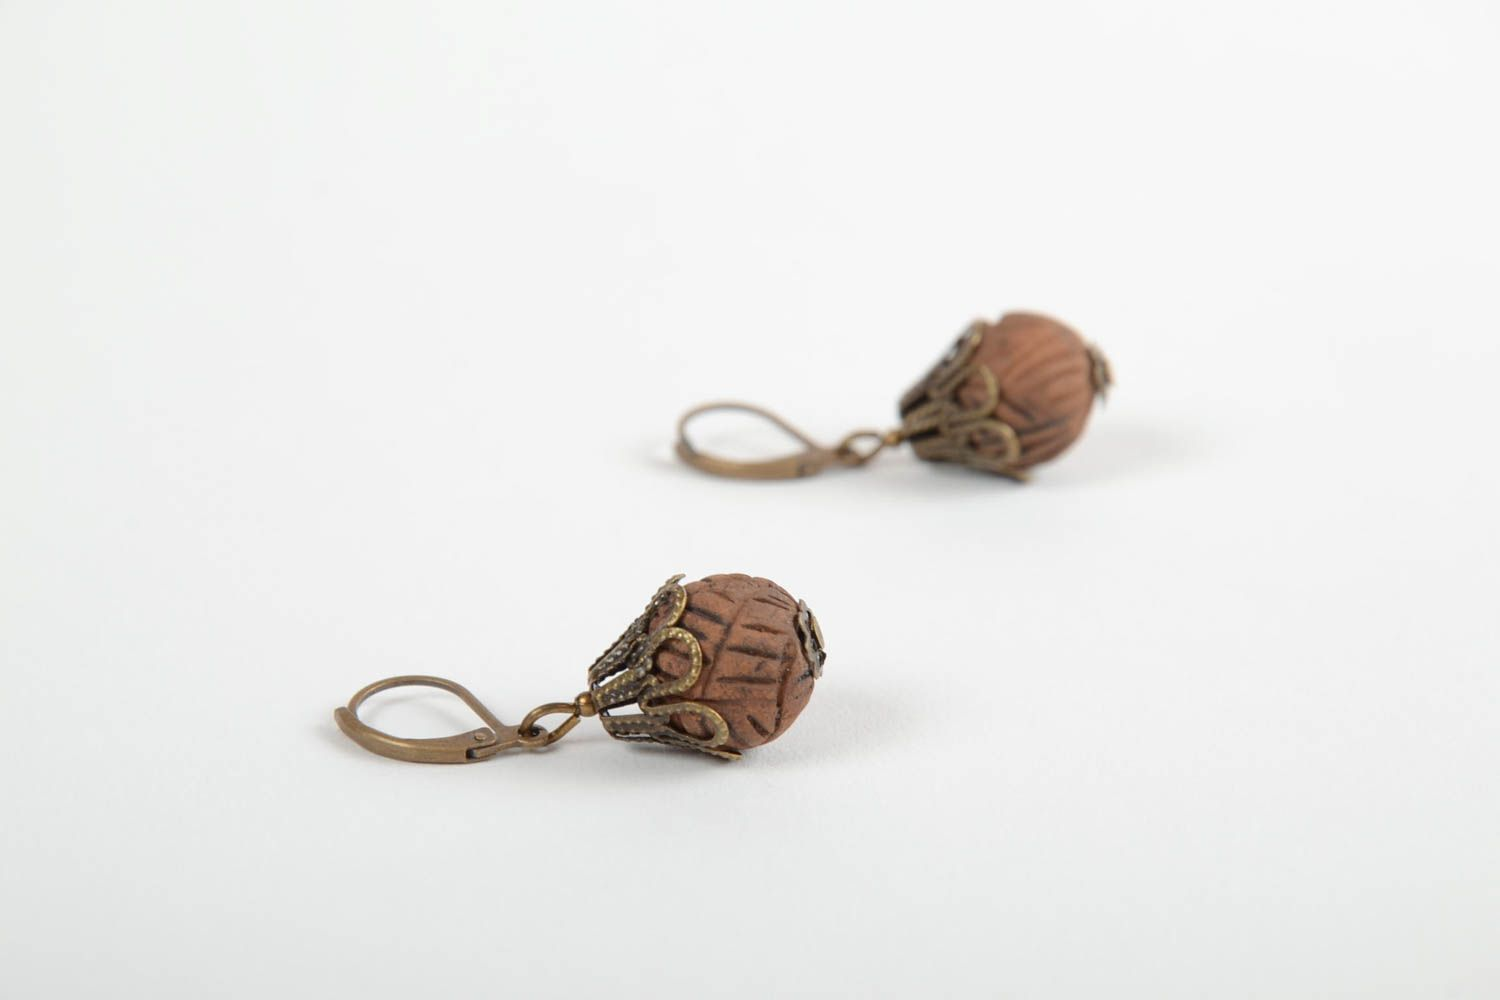 Stylish handmade clay earrings ceramic earrings for women designer accessories photo 4